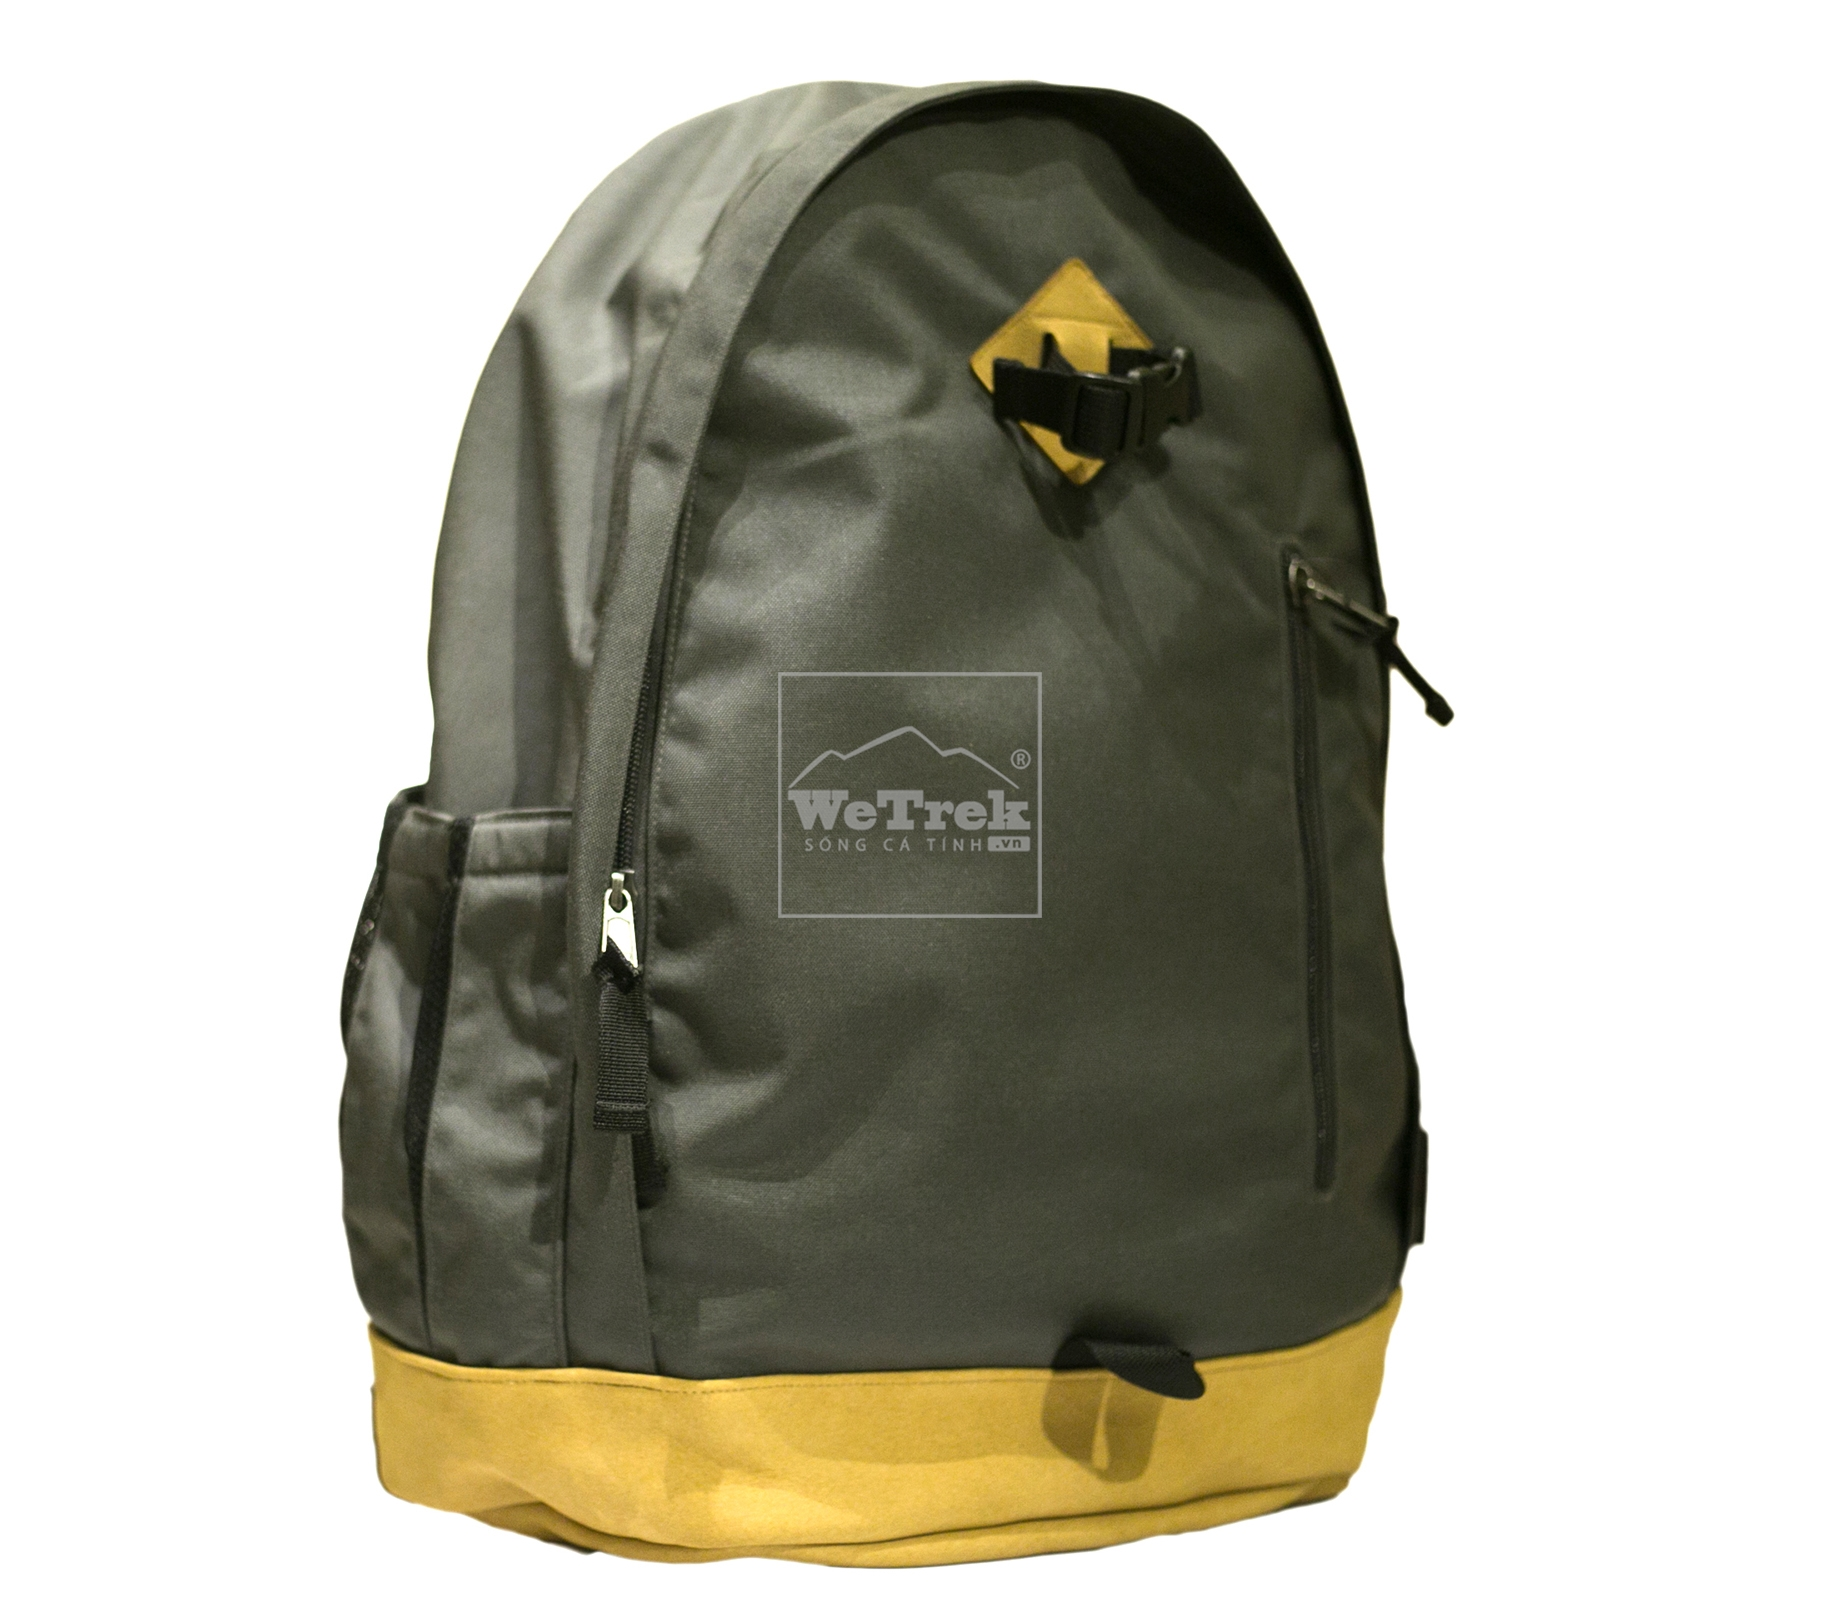 5-balo-chong-nuoc-Weather-Guide-Waterproof-Backpack-CA-0129-8353-wetrekvn.jpg